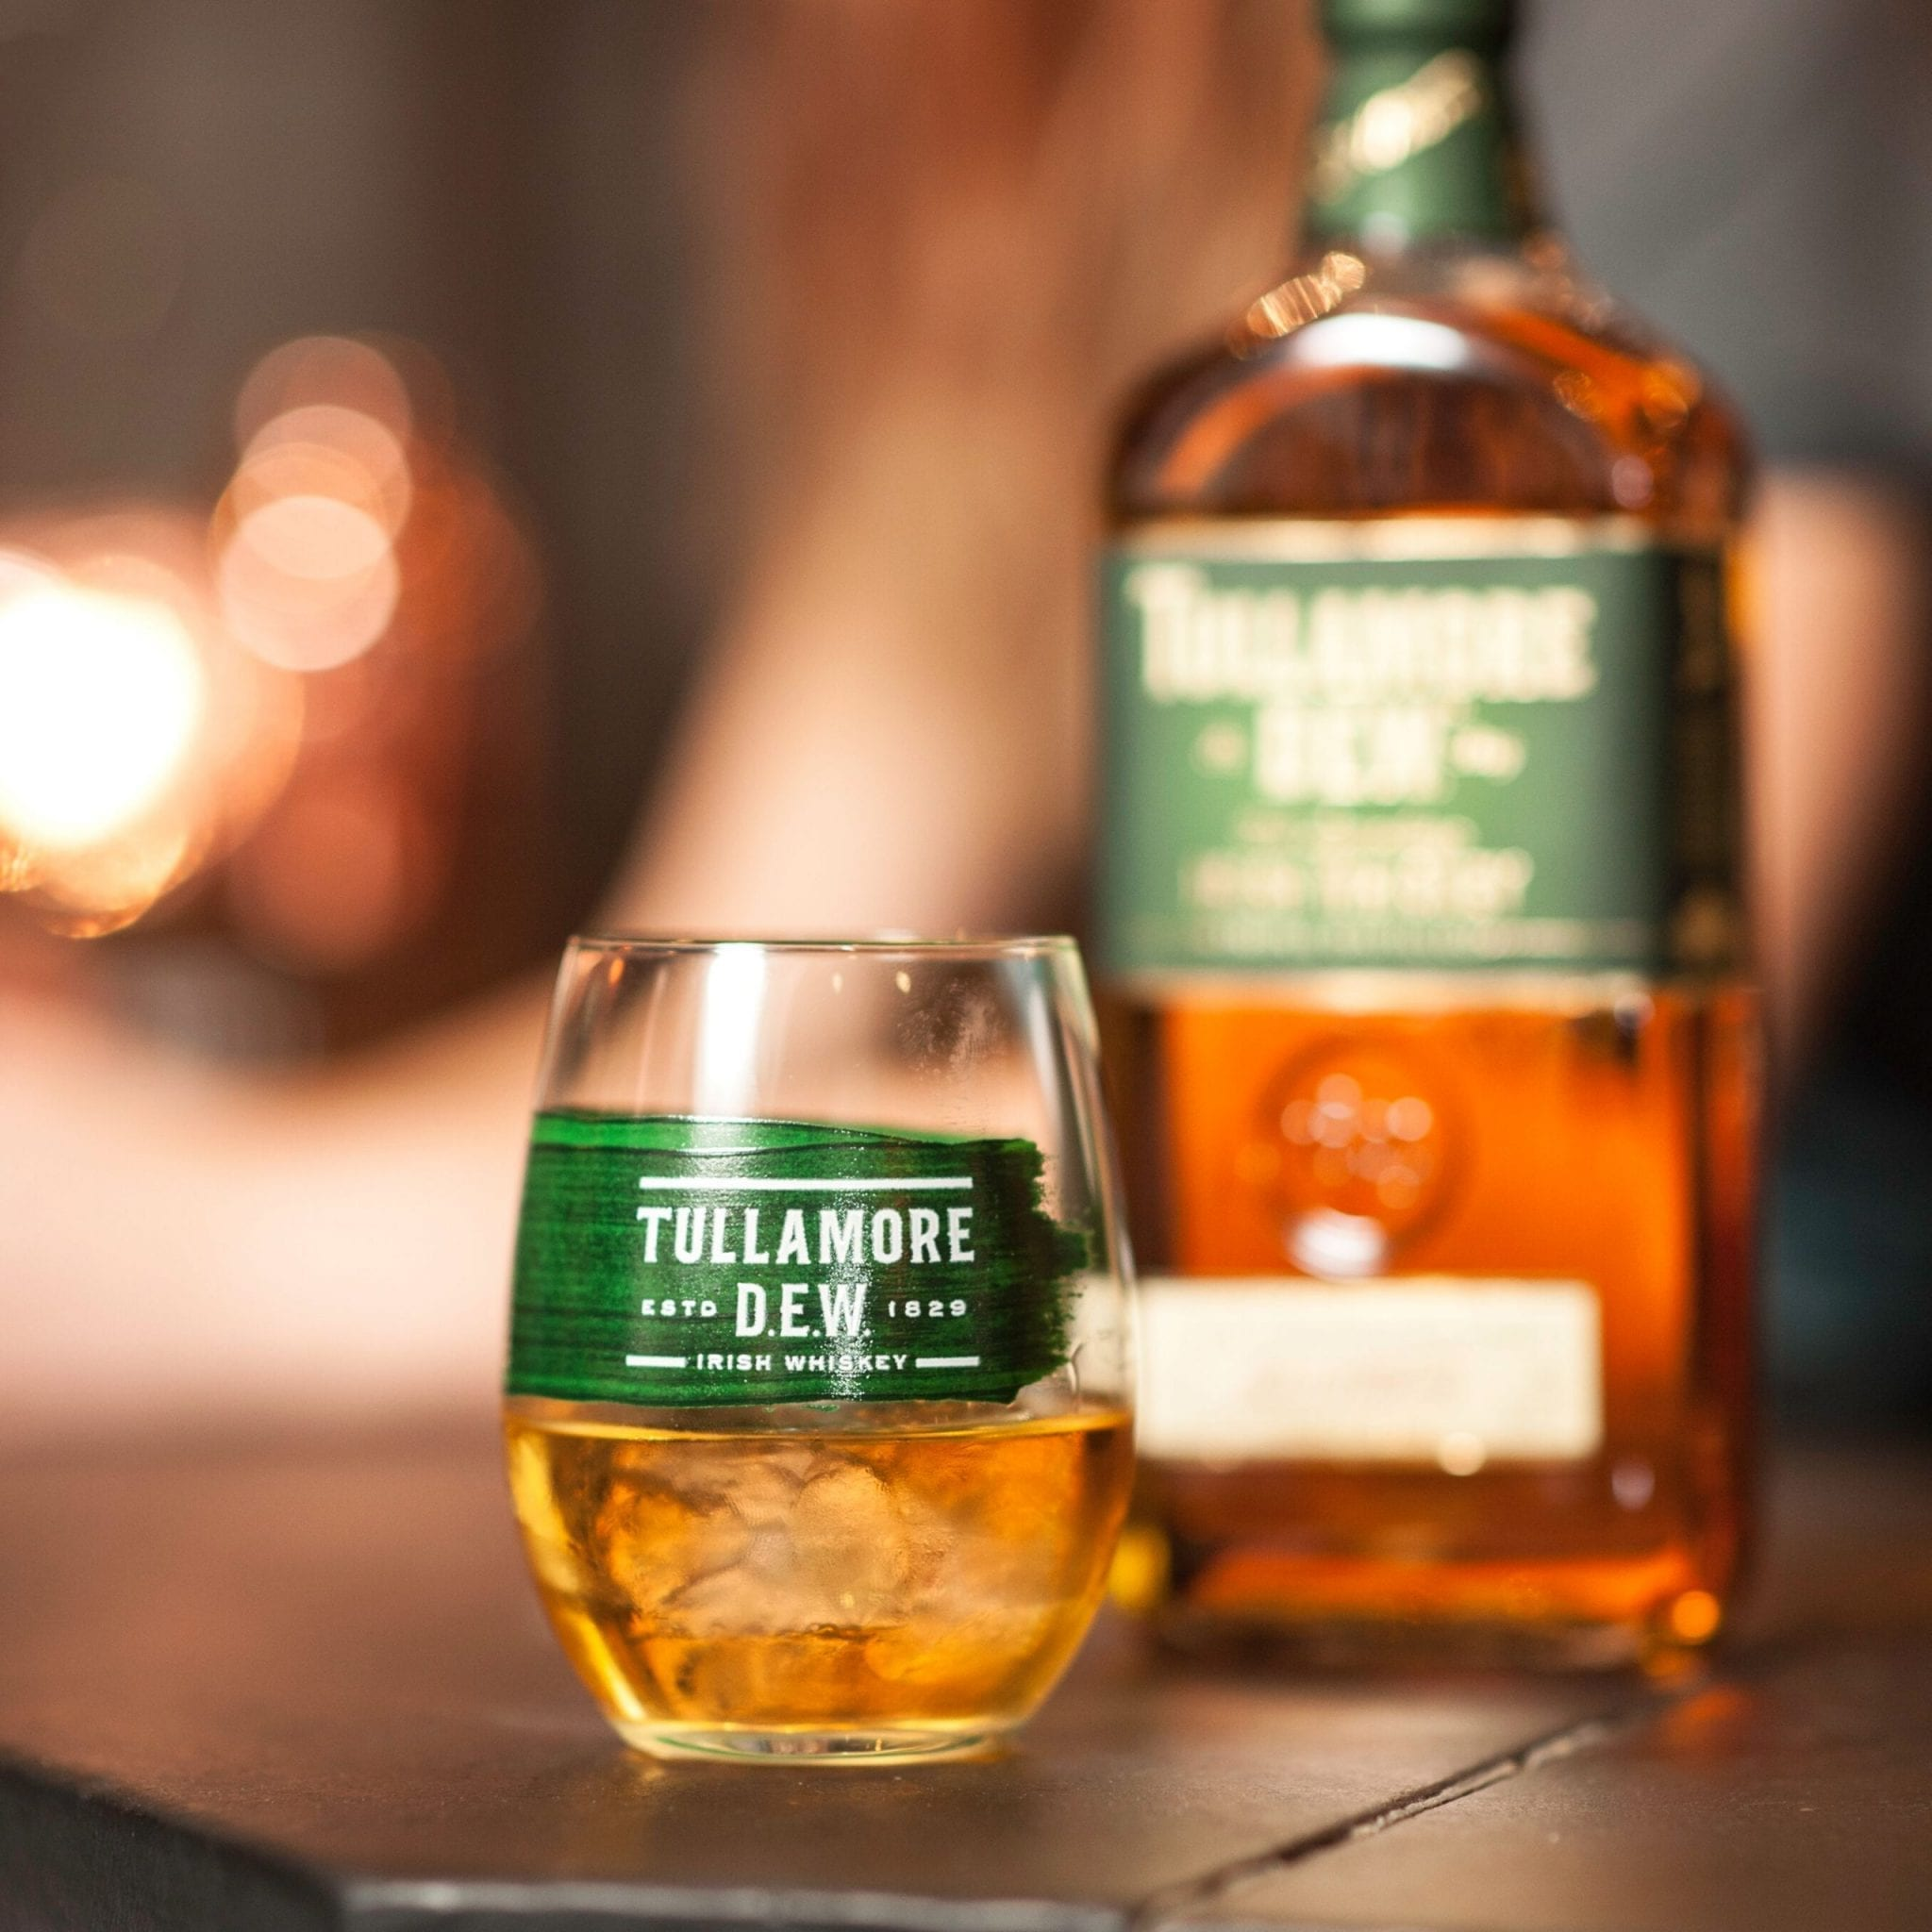 Tullamore DEW Irish Whiskey Blog